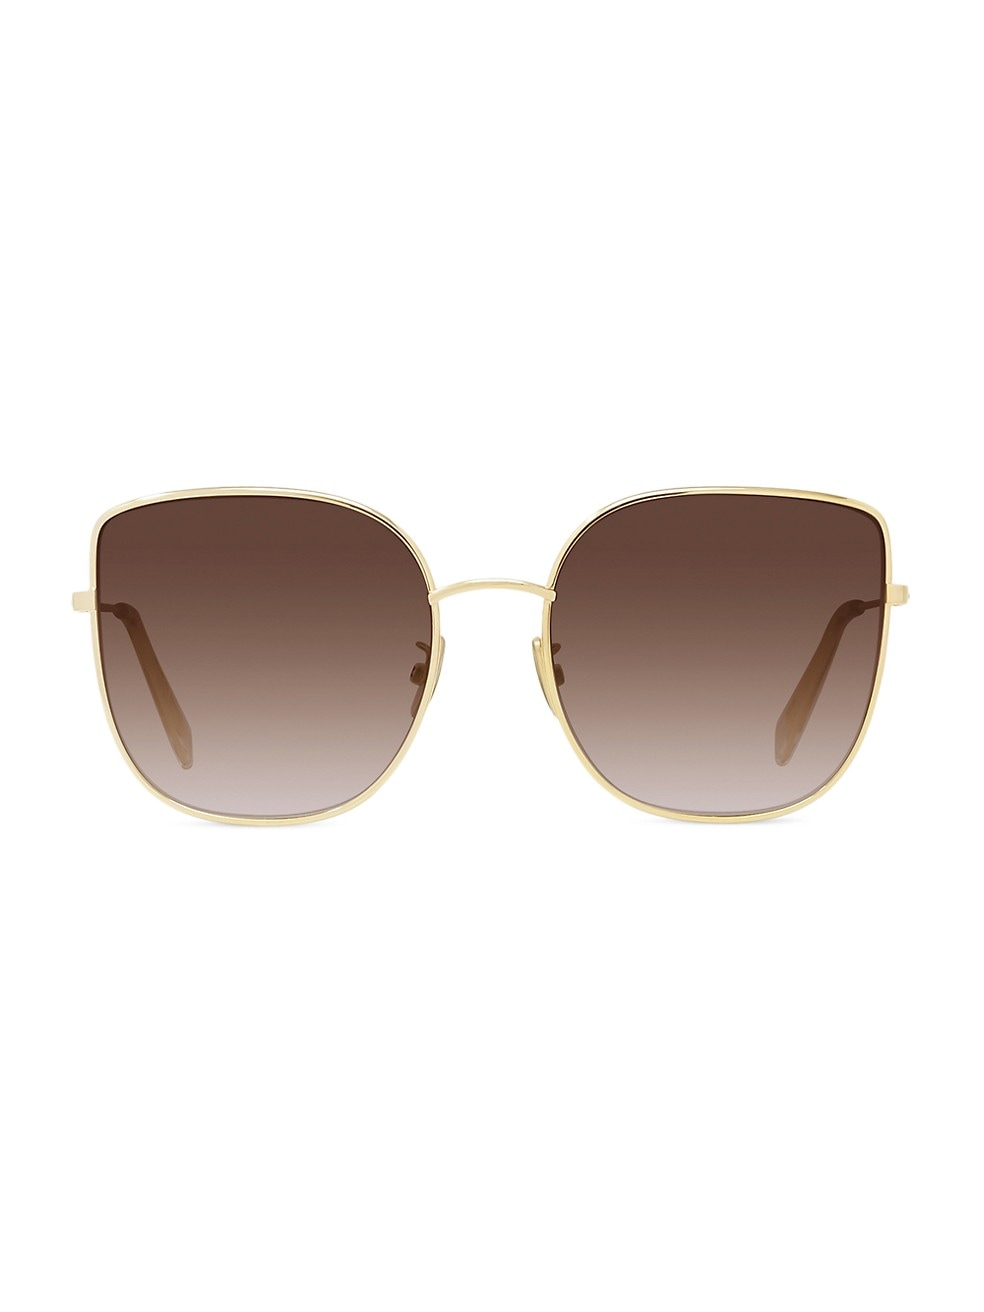 59MM Metal Cat Eye Sunglasses by Celine, available on saksfifthavenue.com for $400 Olivia Culpo Sunglasses Exact Product